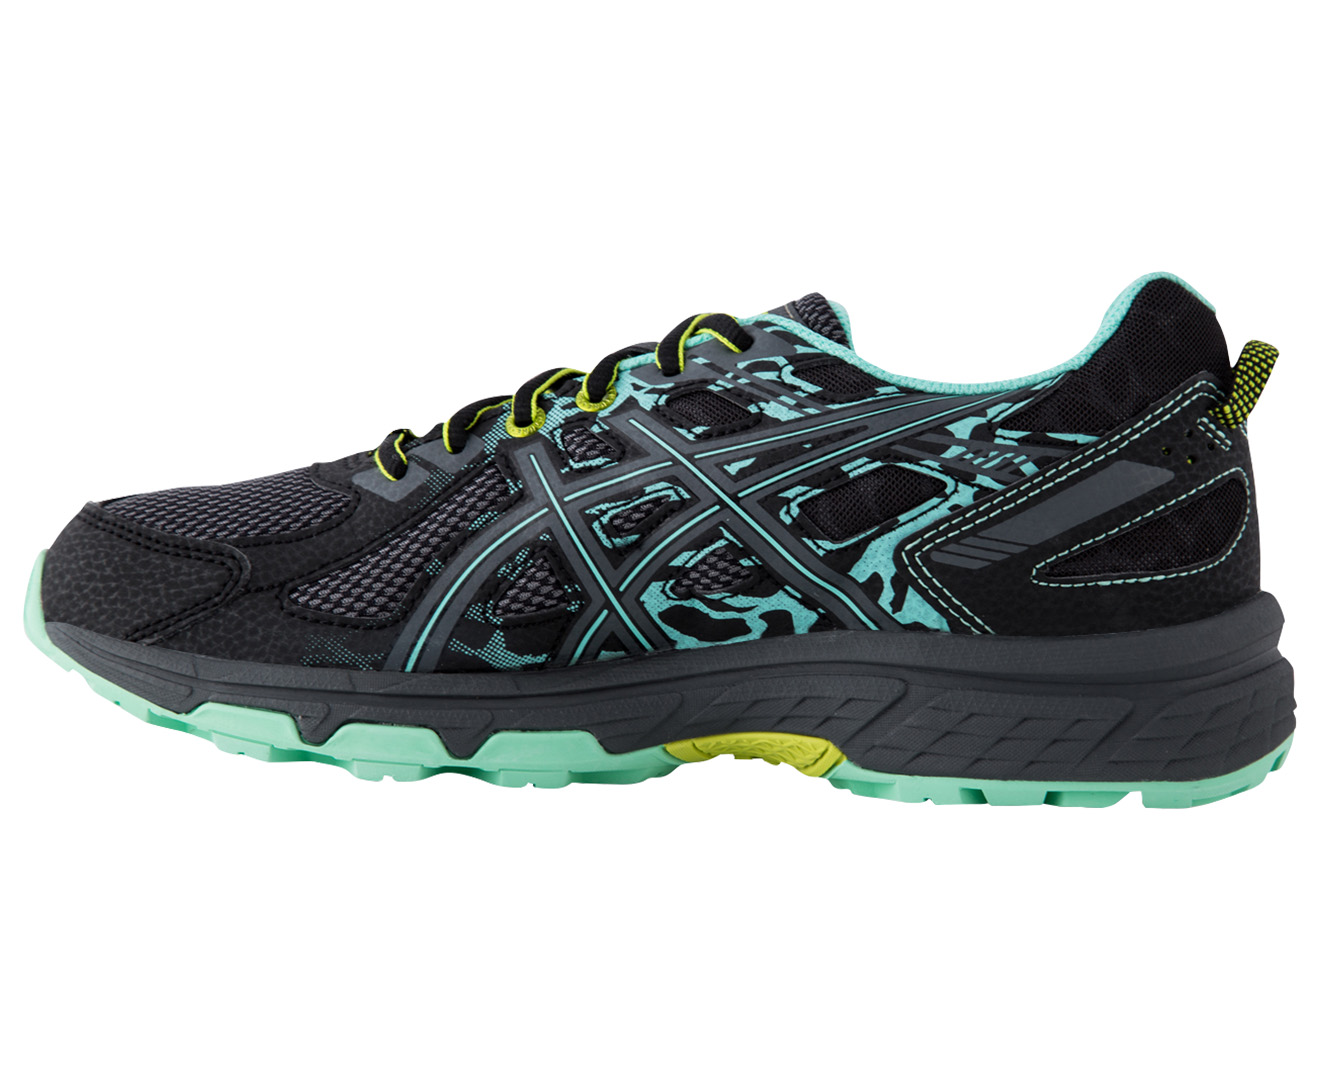 Asics Wide Fit Running Shoes